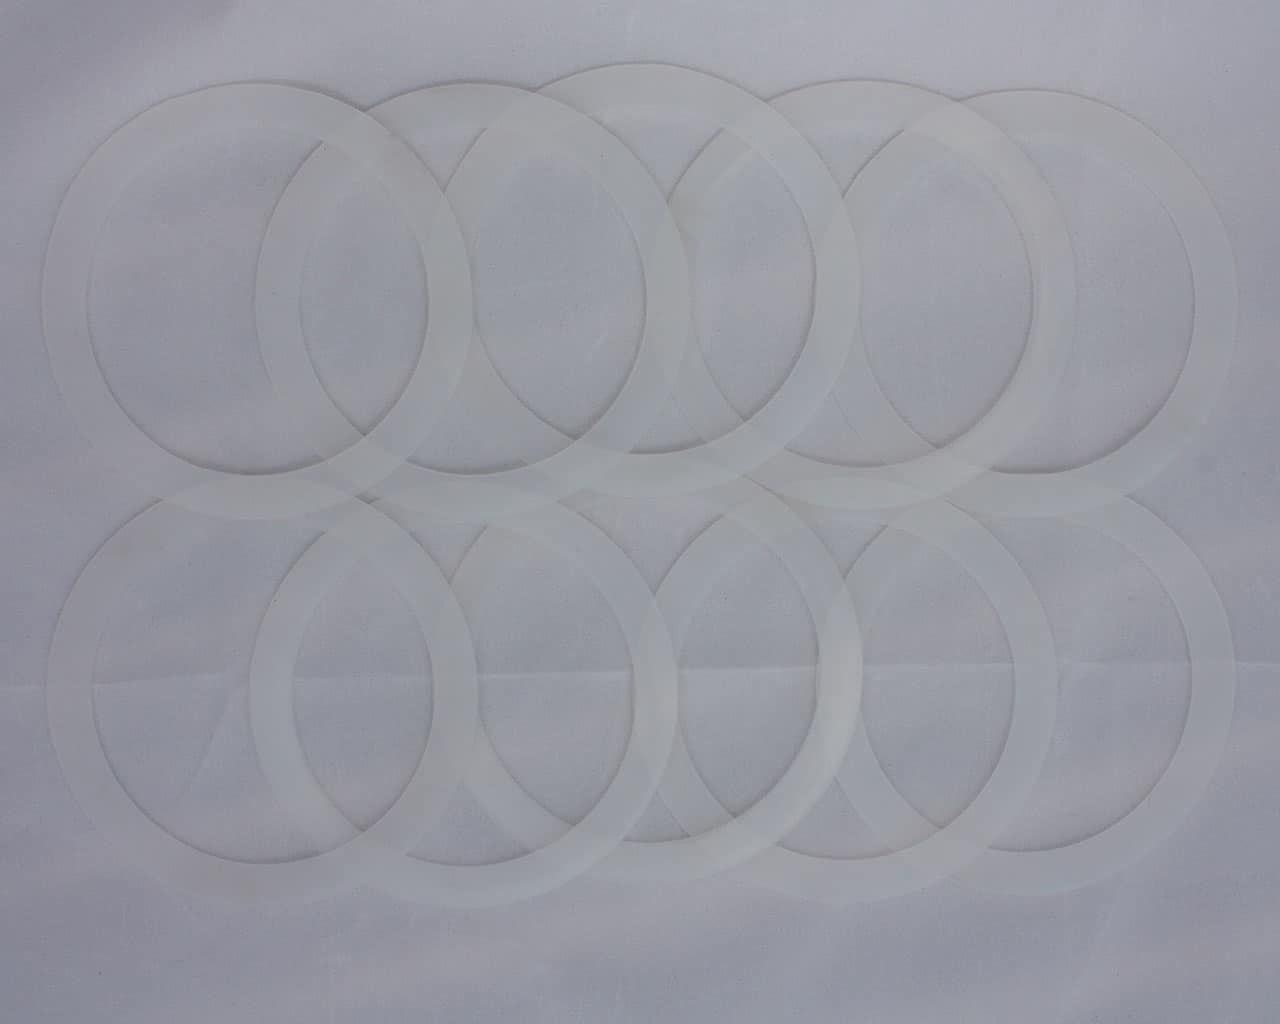 Leak Proof Silicone Sealing Rings Seals For Ball Plastic Caps